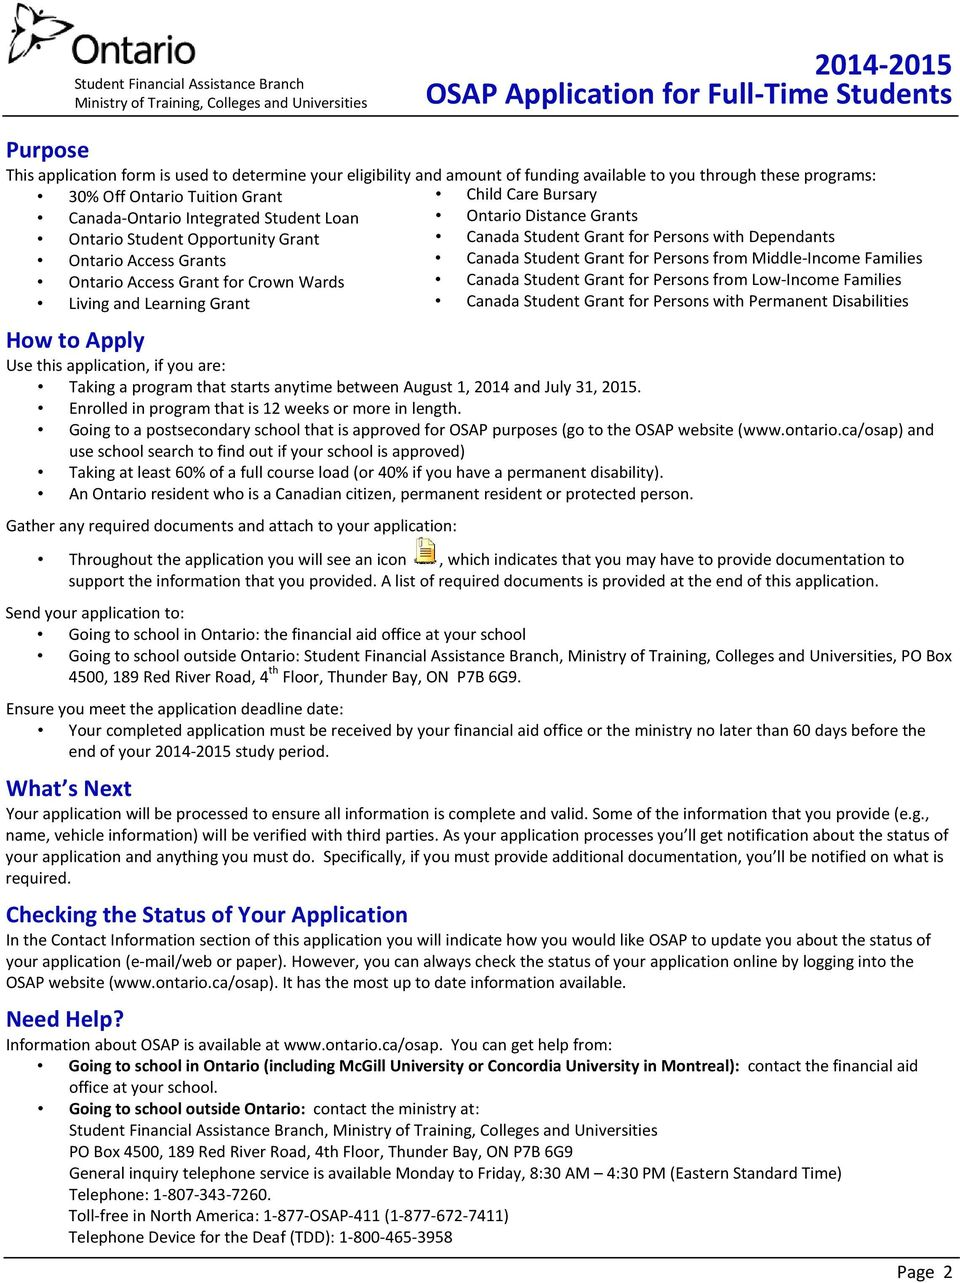 Osap Application For Full Time Students Pdf